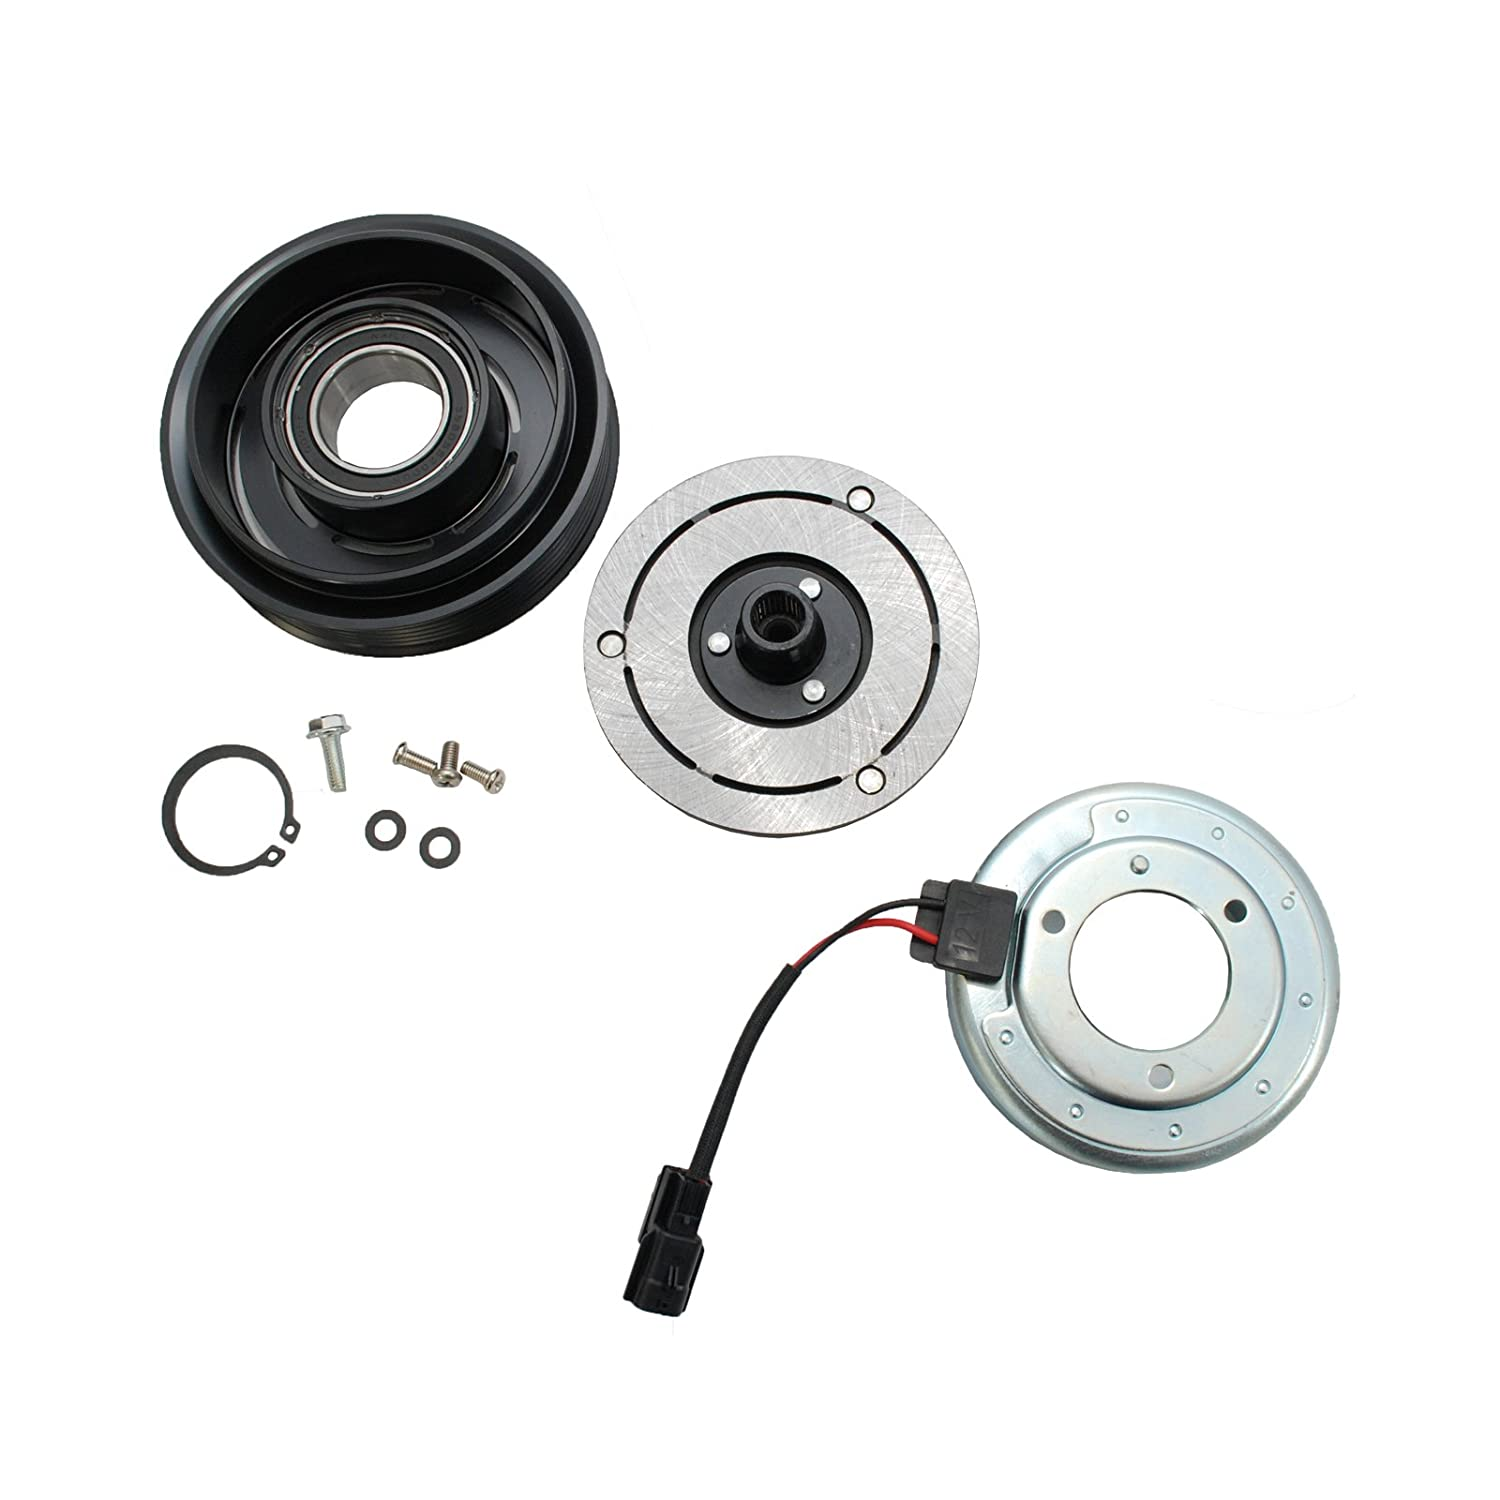 HexAutoparts A/C AC Compressor Clutch Repair Kit for Nissan Rouge 2.5L 2008-2013